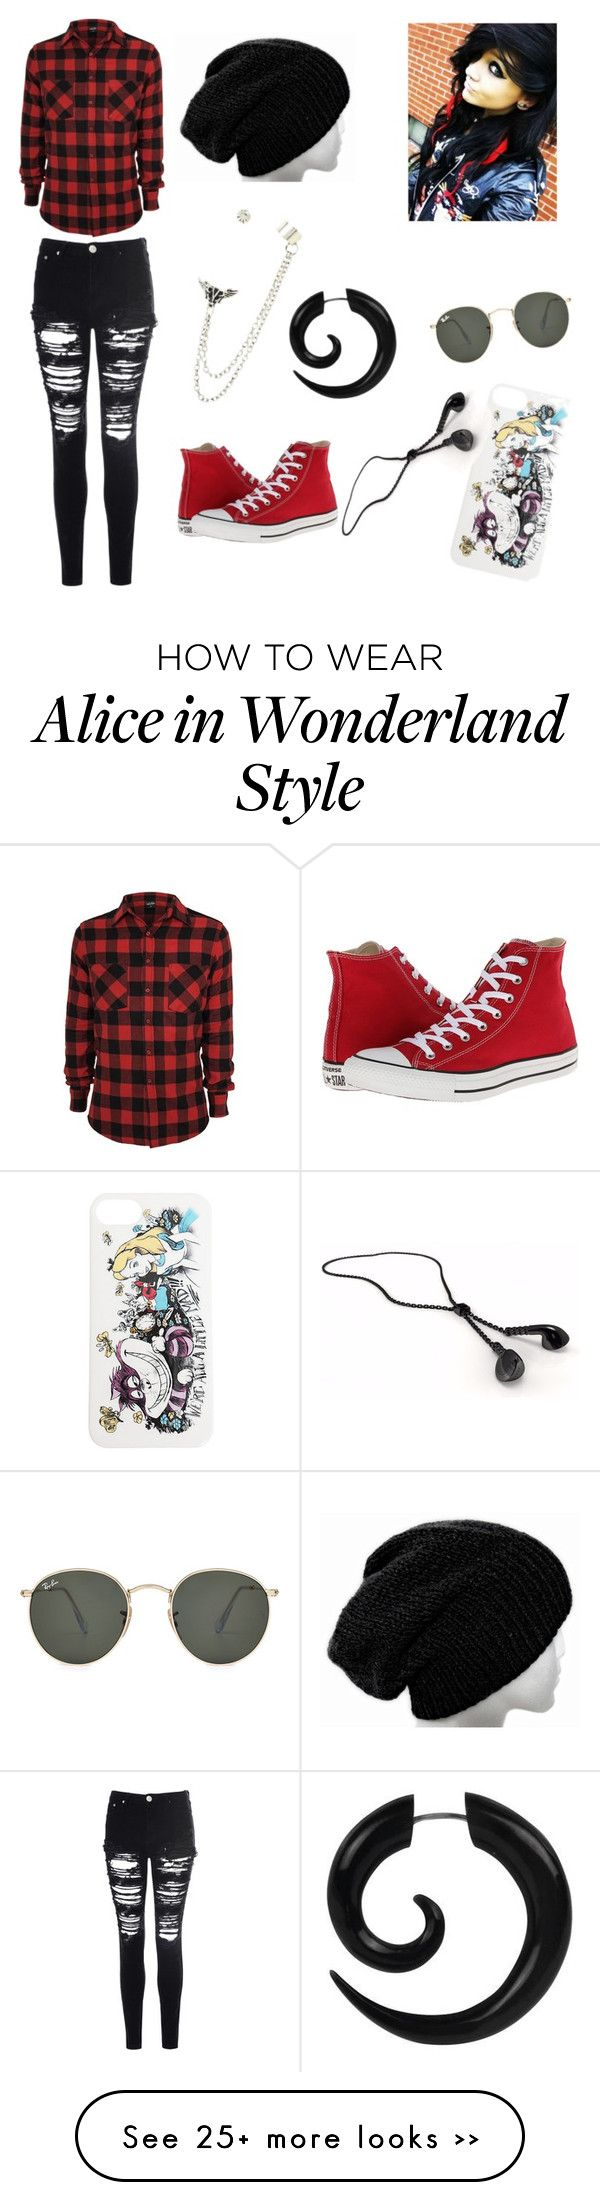 """""""Emo look"""" by nikki-blue on Polyvore SORRY THIS DOESNT BELONG HERE"""